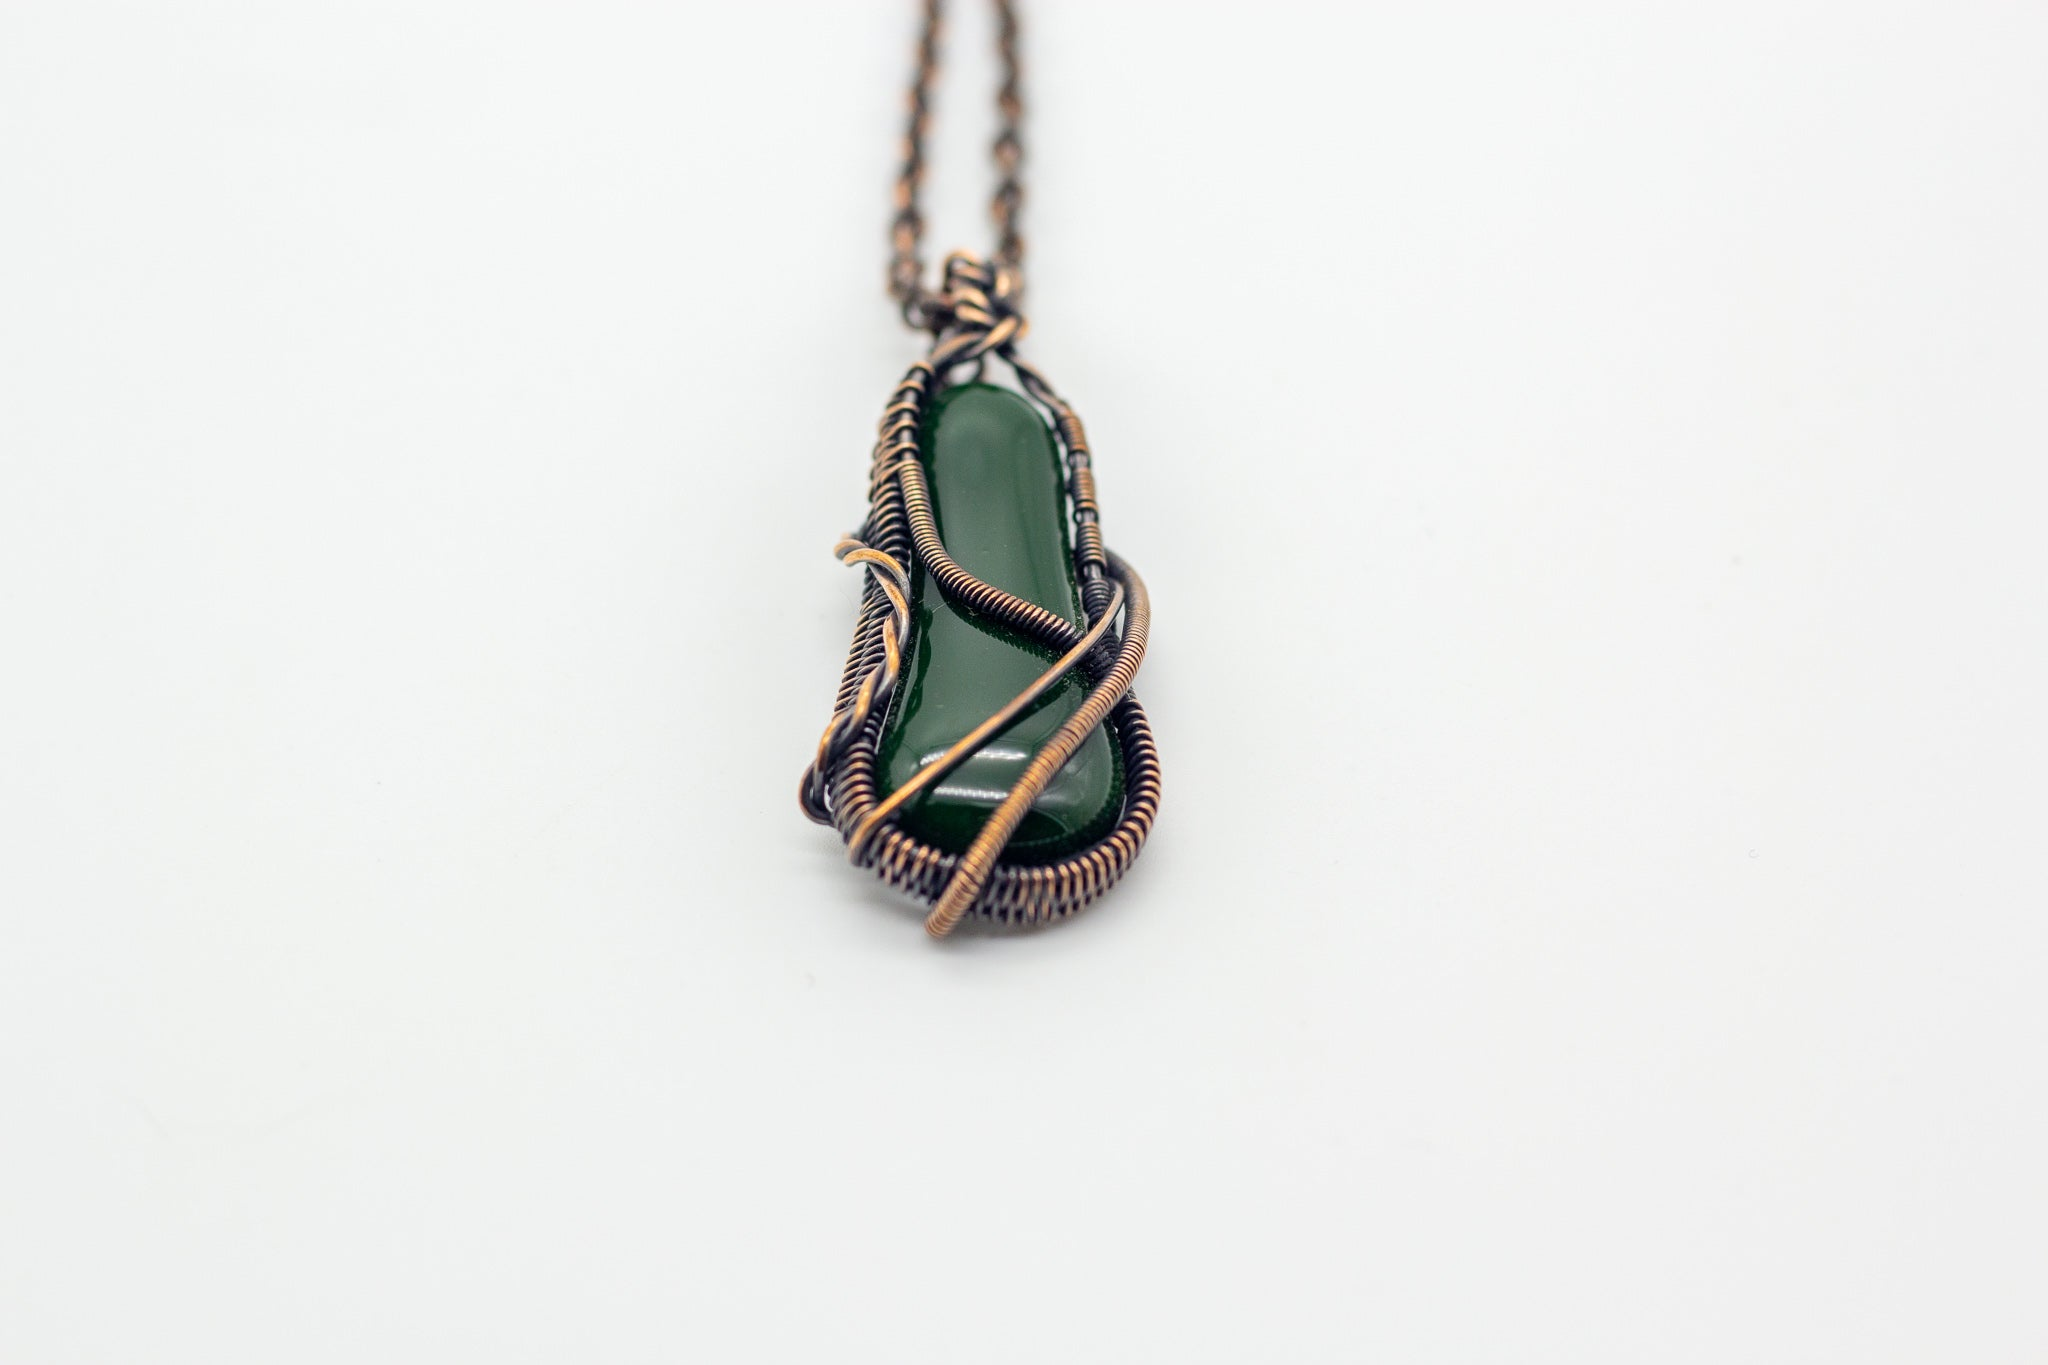 dark-green-fused-glass-pendant-copper-wire-wrapping-nymph-in-the-woods-jewelry